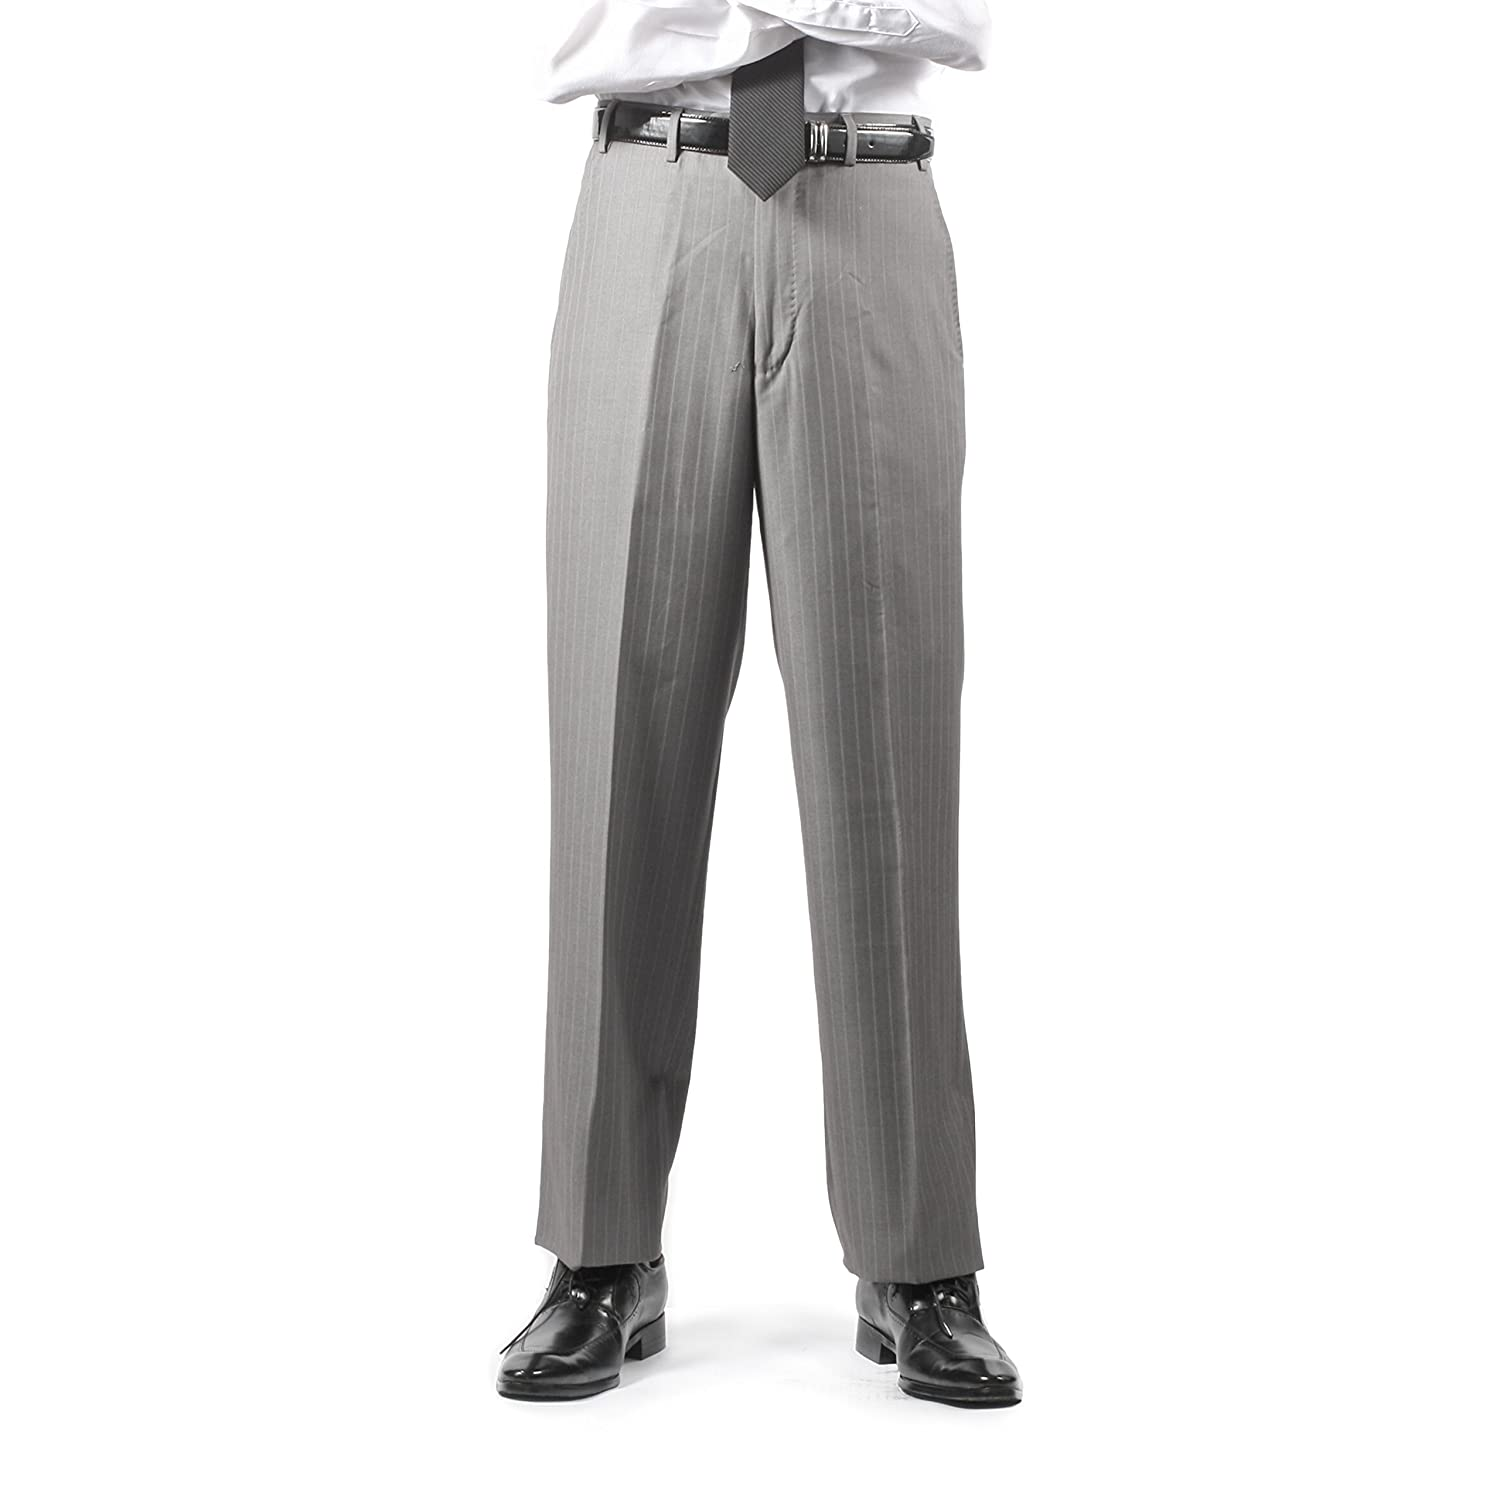 1930s Style Men's Pants  Regular Fit Business Dress Pants  AT vintagedancer.com